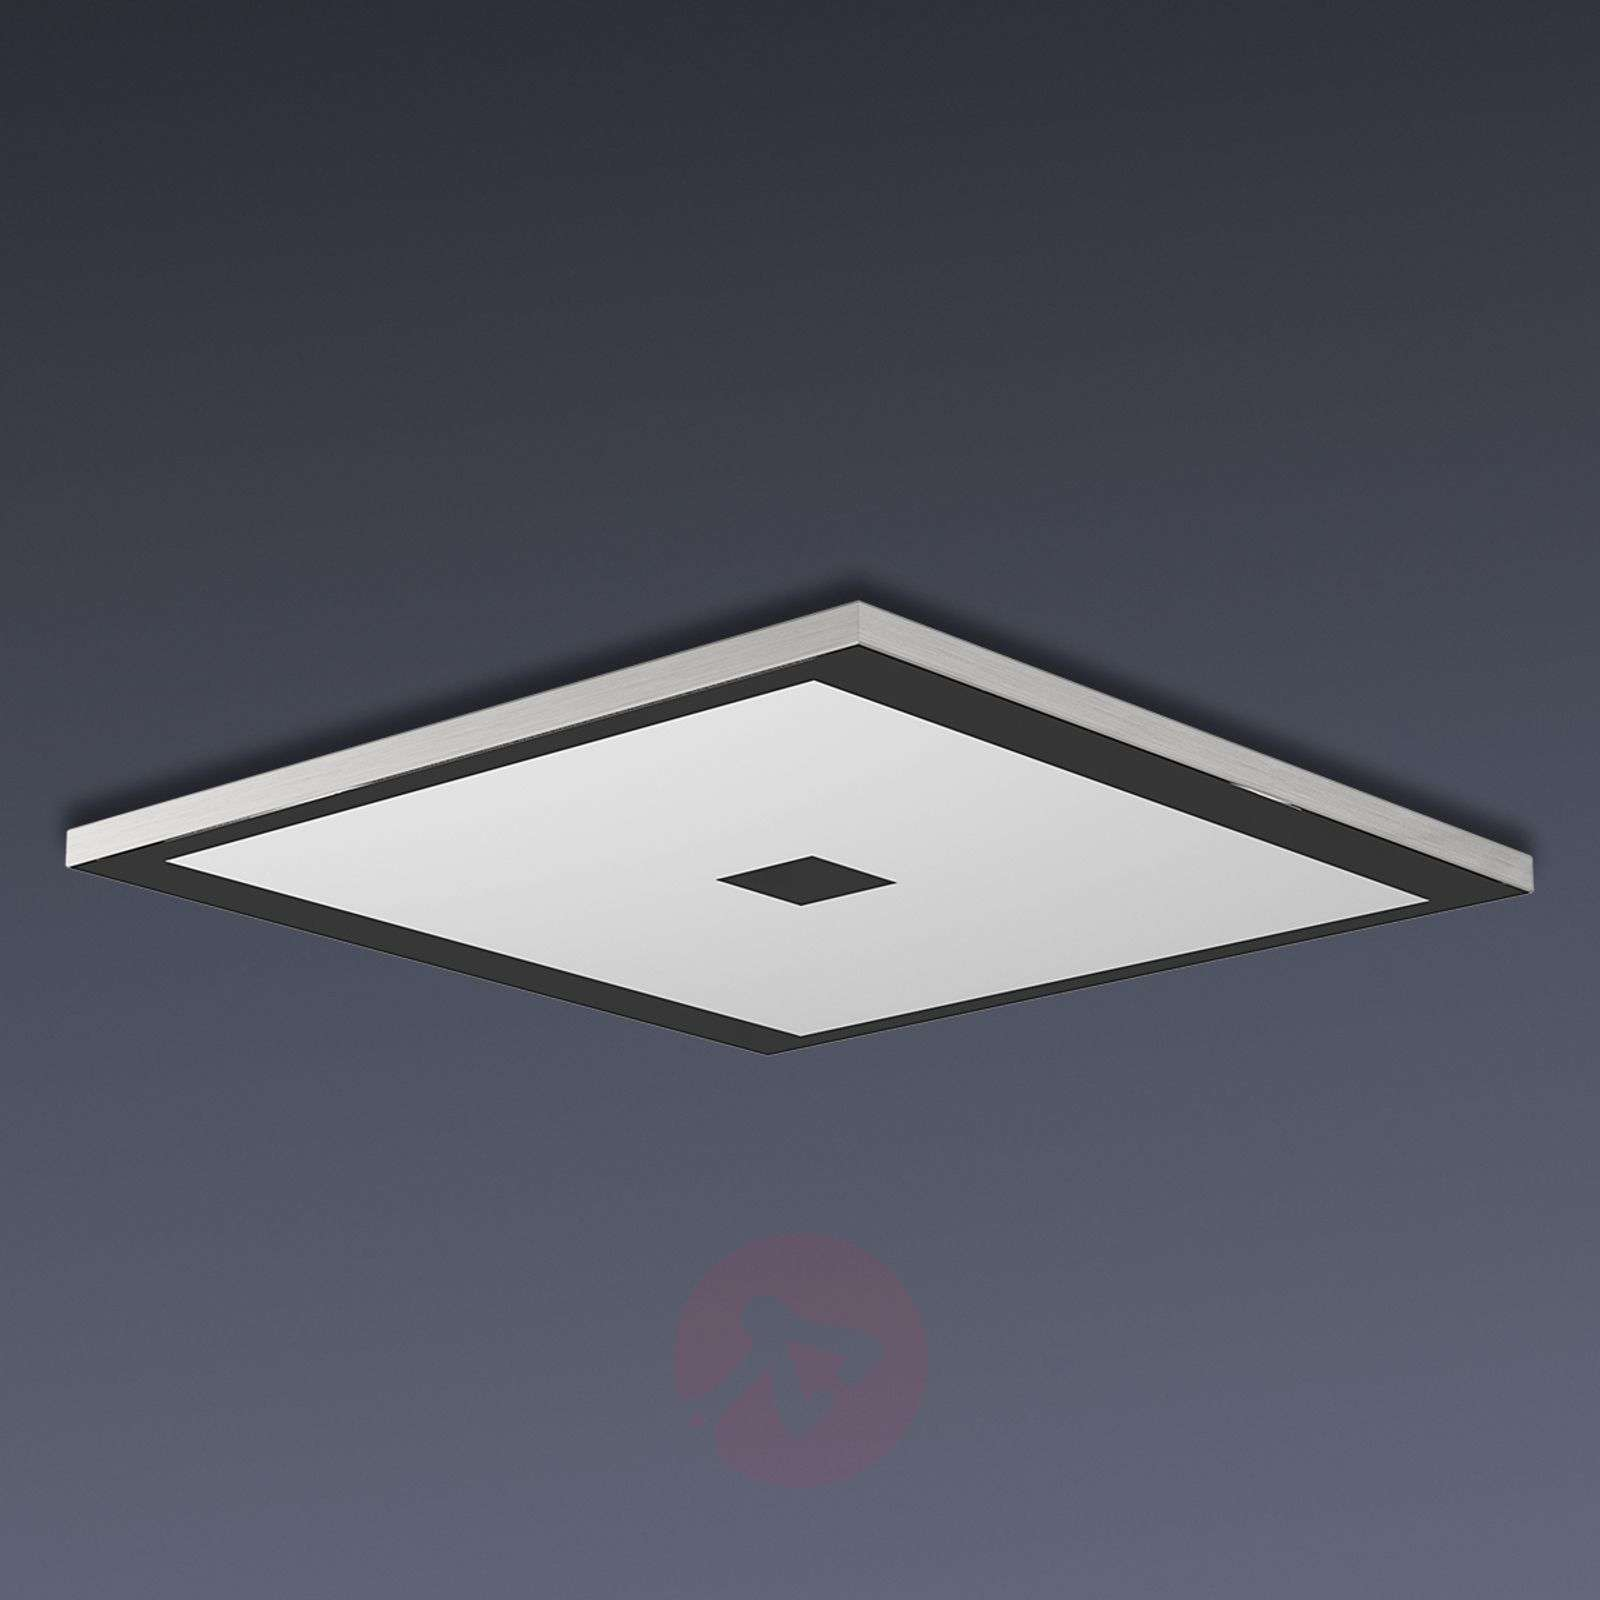 Lampada LED da soffitto quadrata Zen Color Control-3025230-03